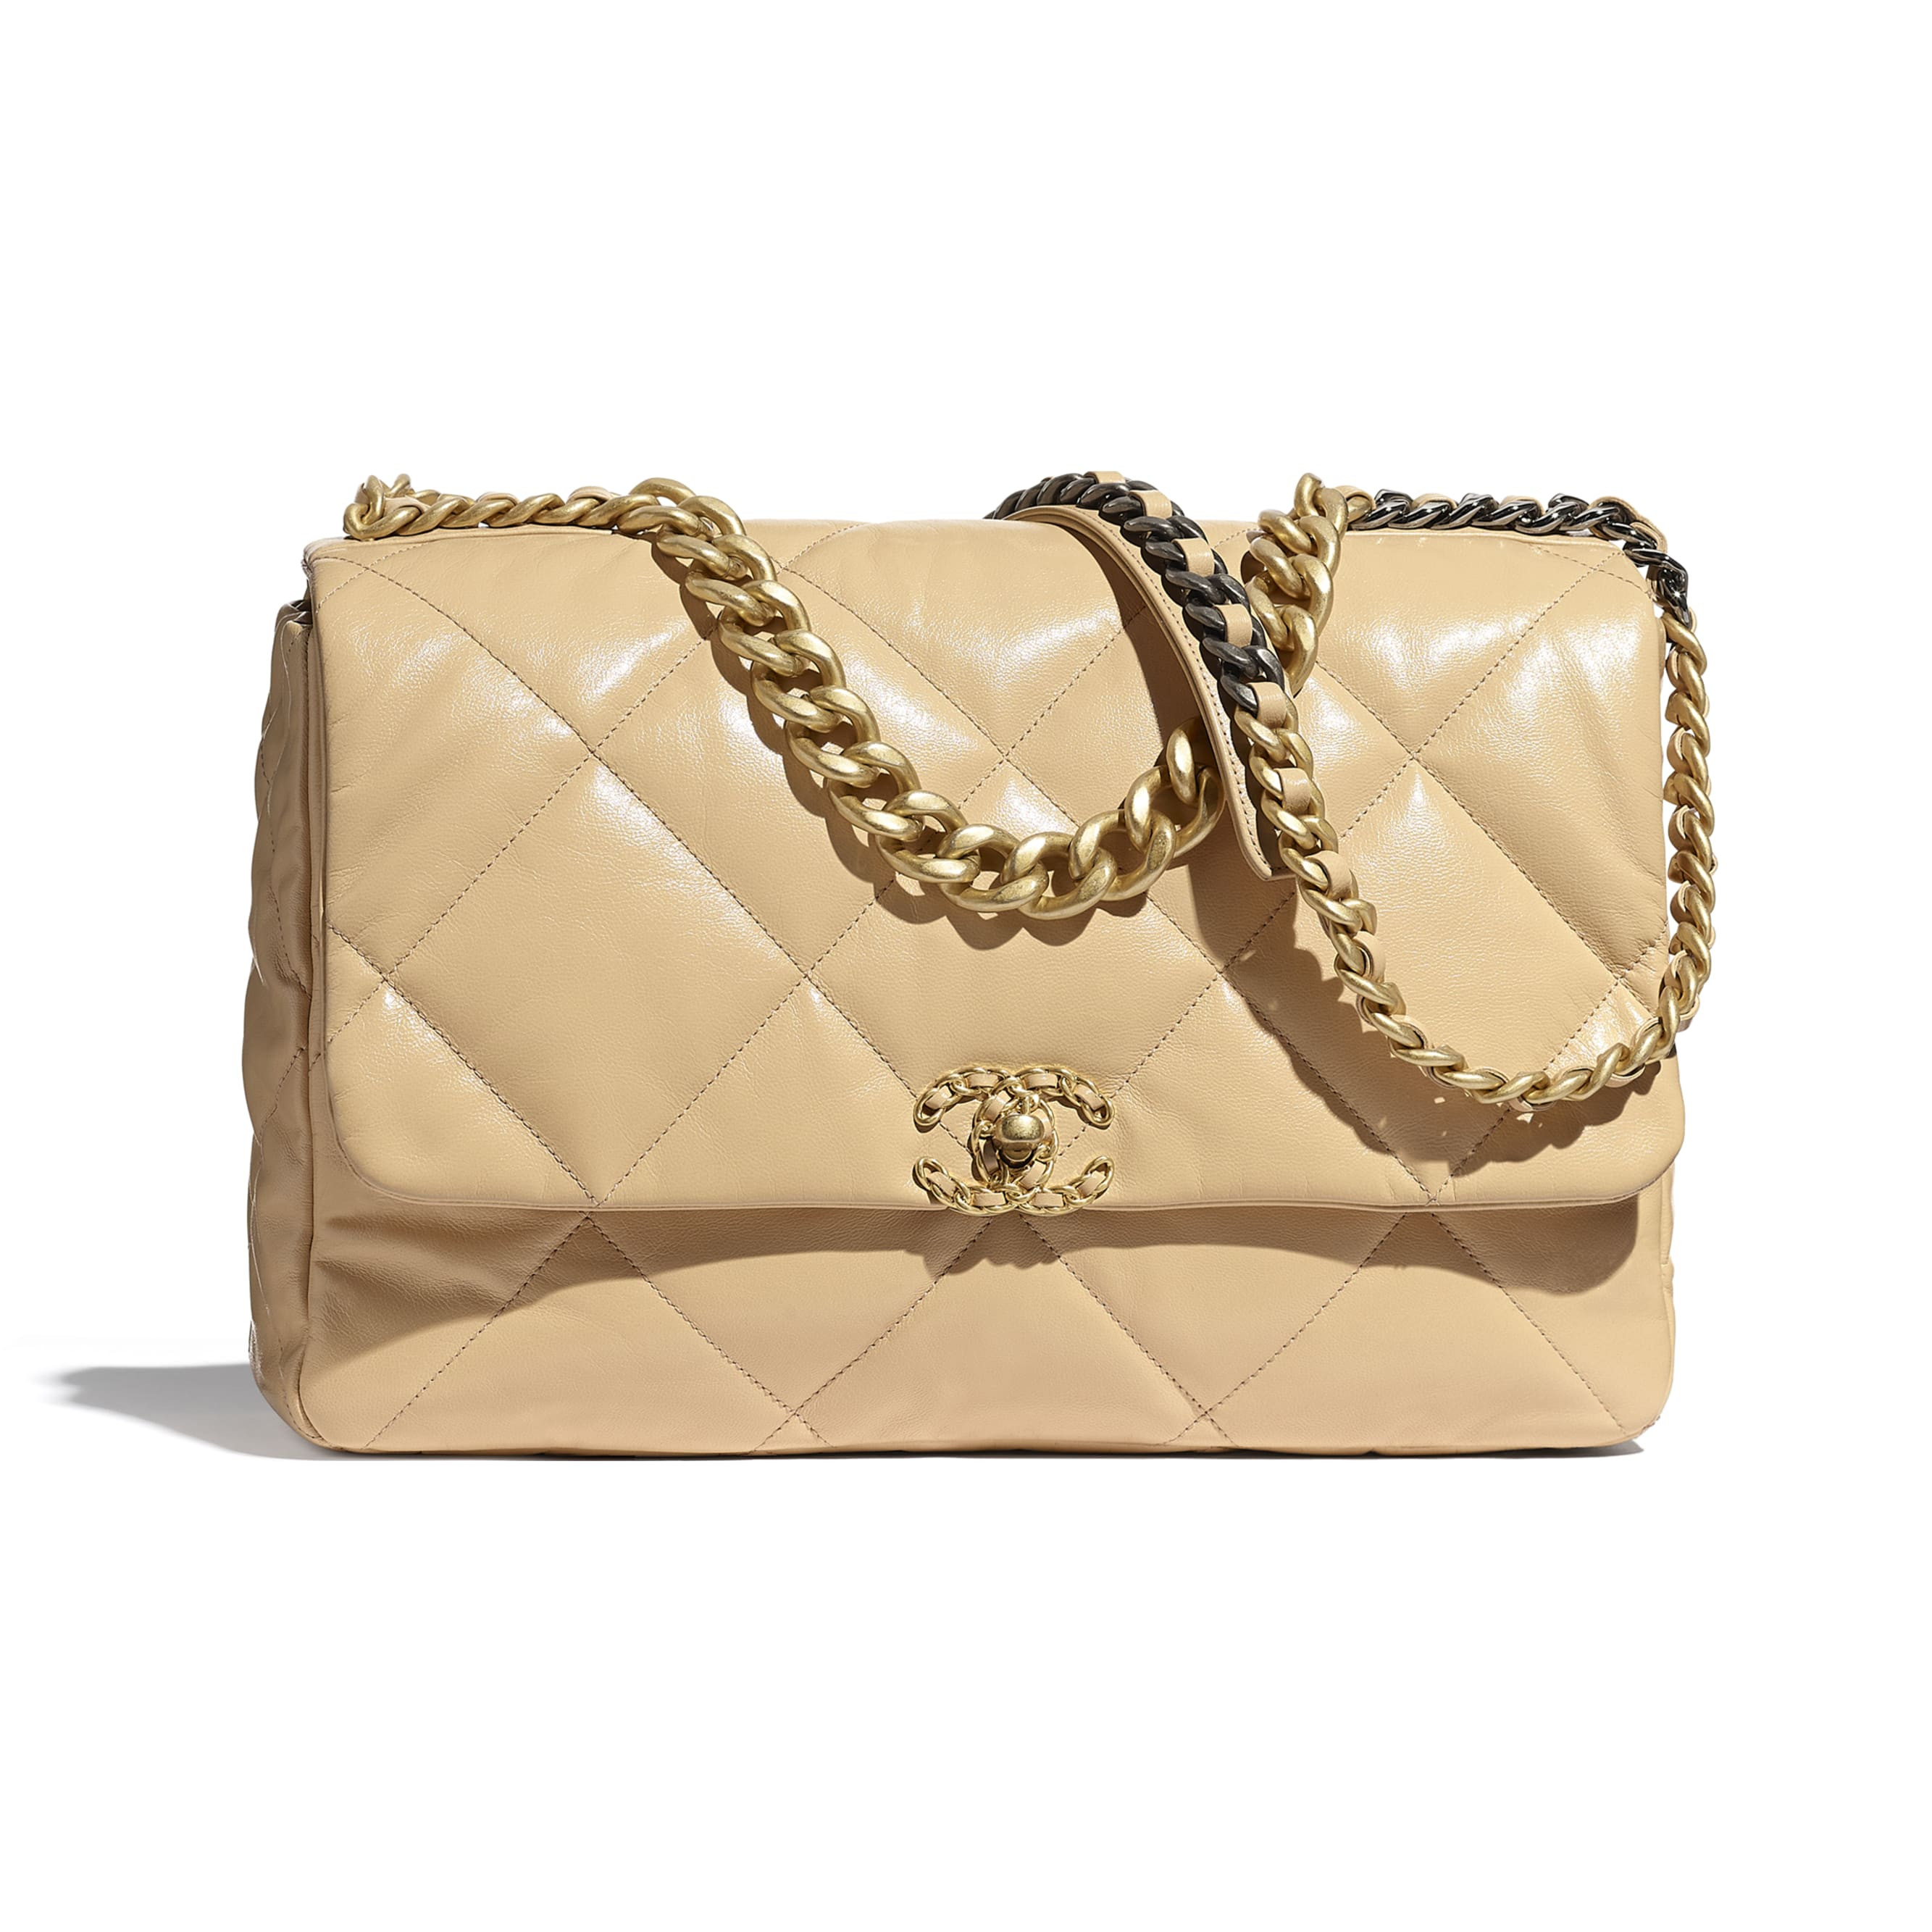 CHANEL 19 Maxi Flap Bag - Beige - Shiny Goatskin, Gold-Tone, Silver-Tone & Ruthenium-Finish Metal - CHANEL - Default view - see standard sized version